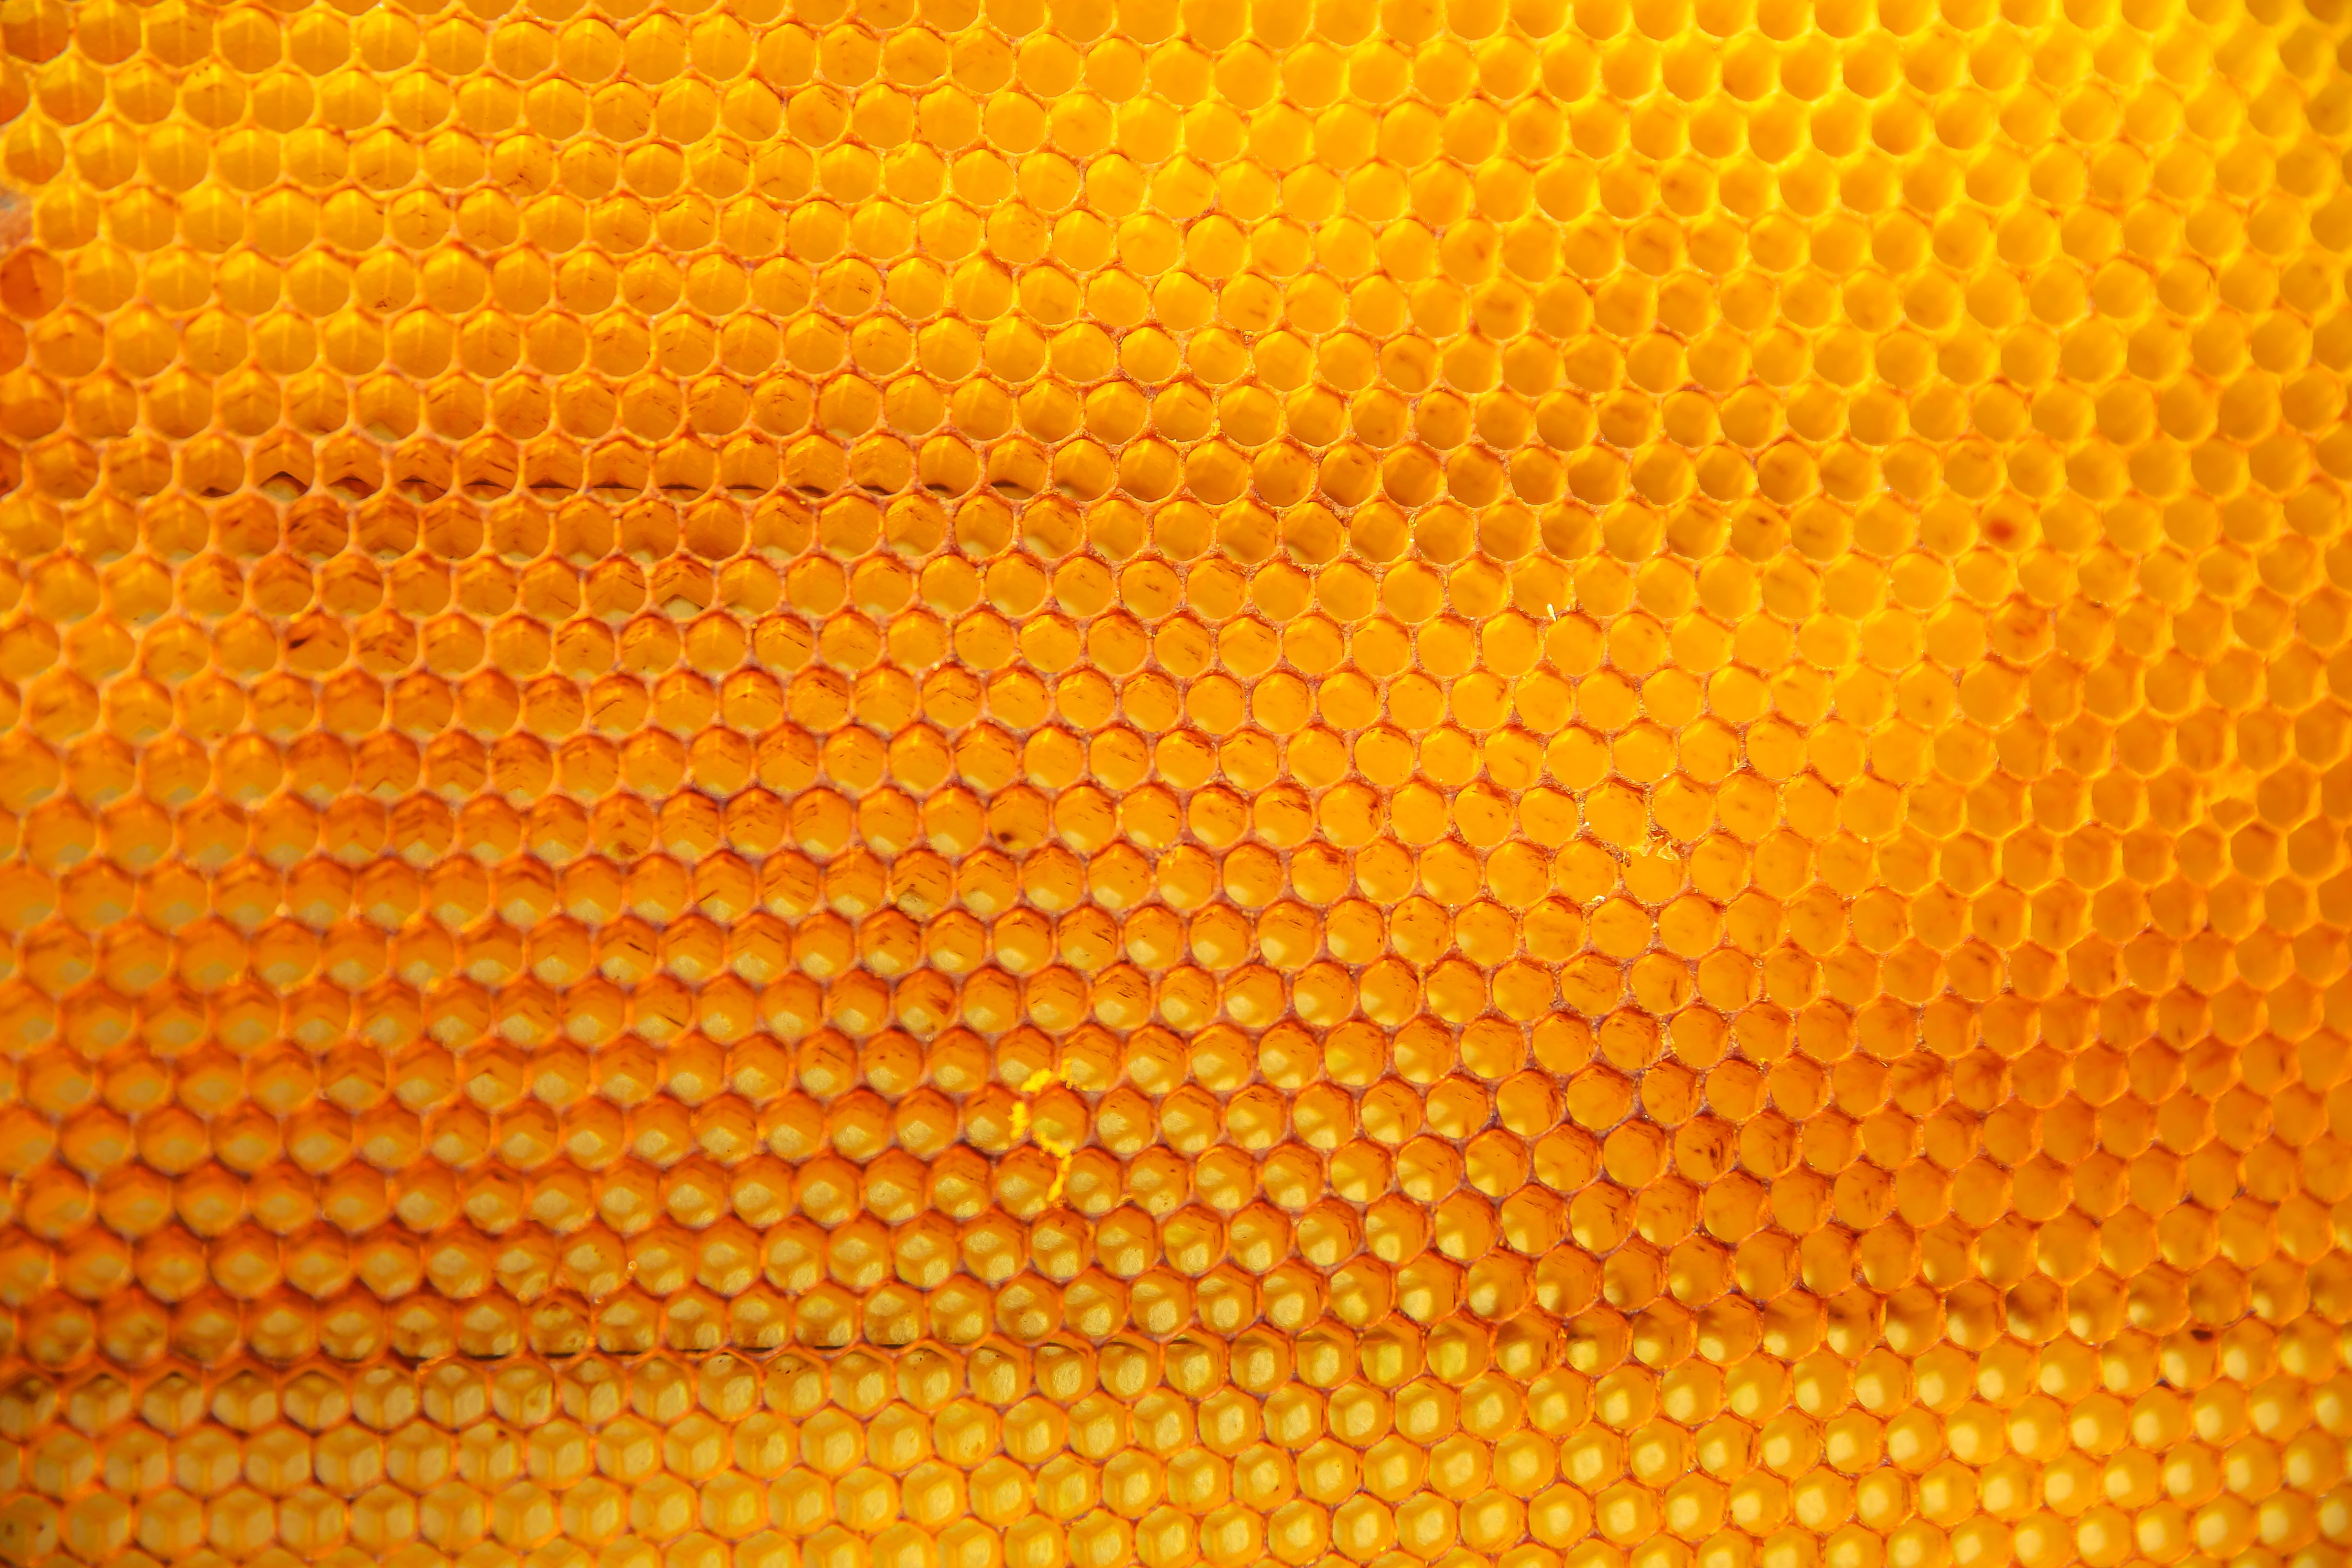 A yellow bubble texture pattern.